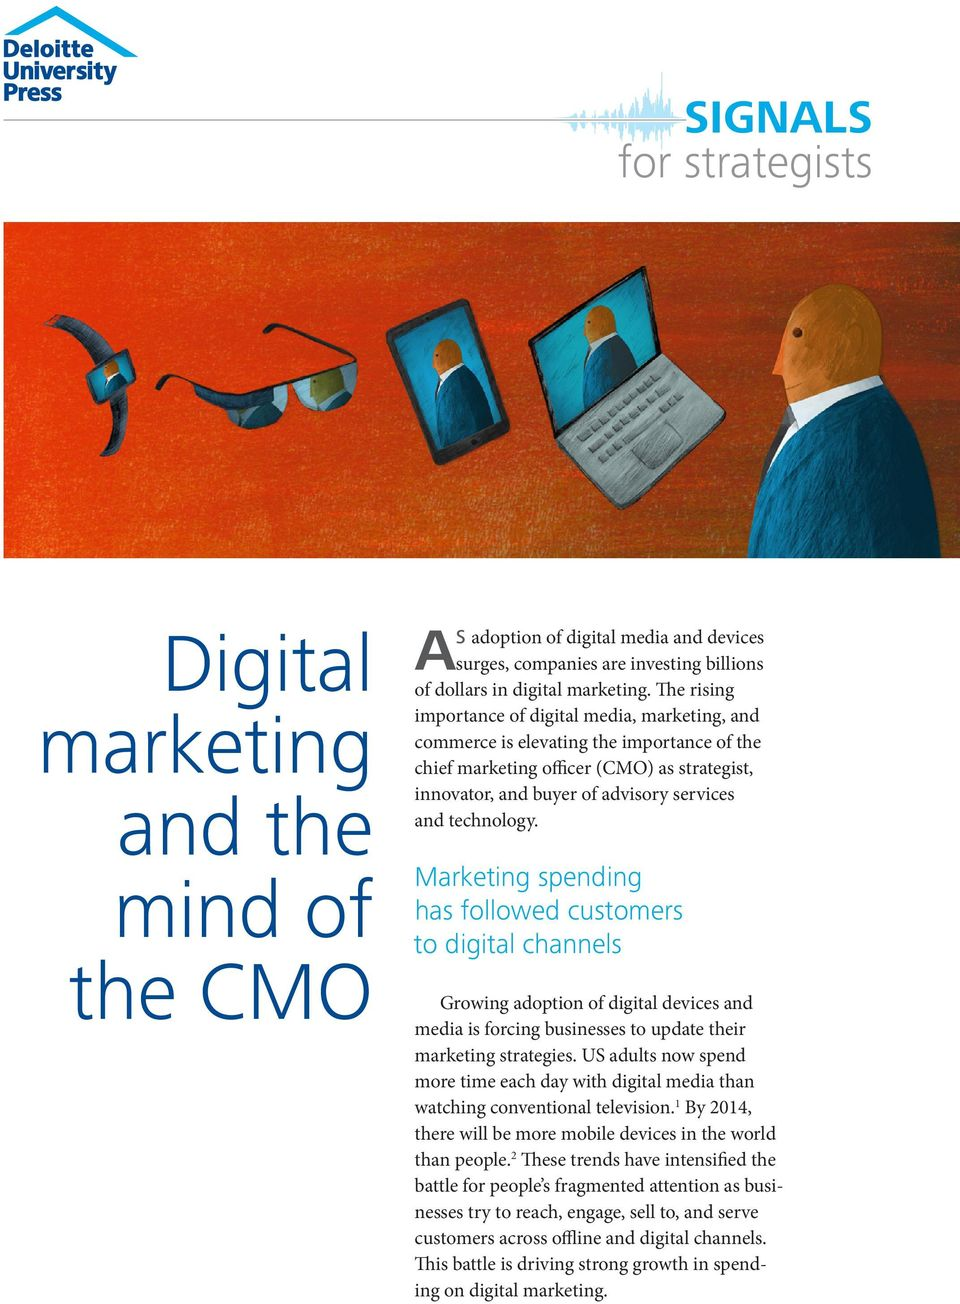 technology. Marketing spending has followed customers to digital channels Growing adoption of digital devices and media is forcing businesses to update their marketing strategies.